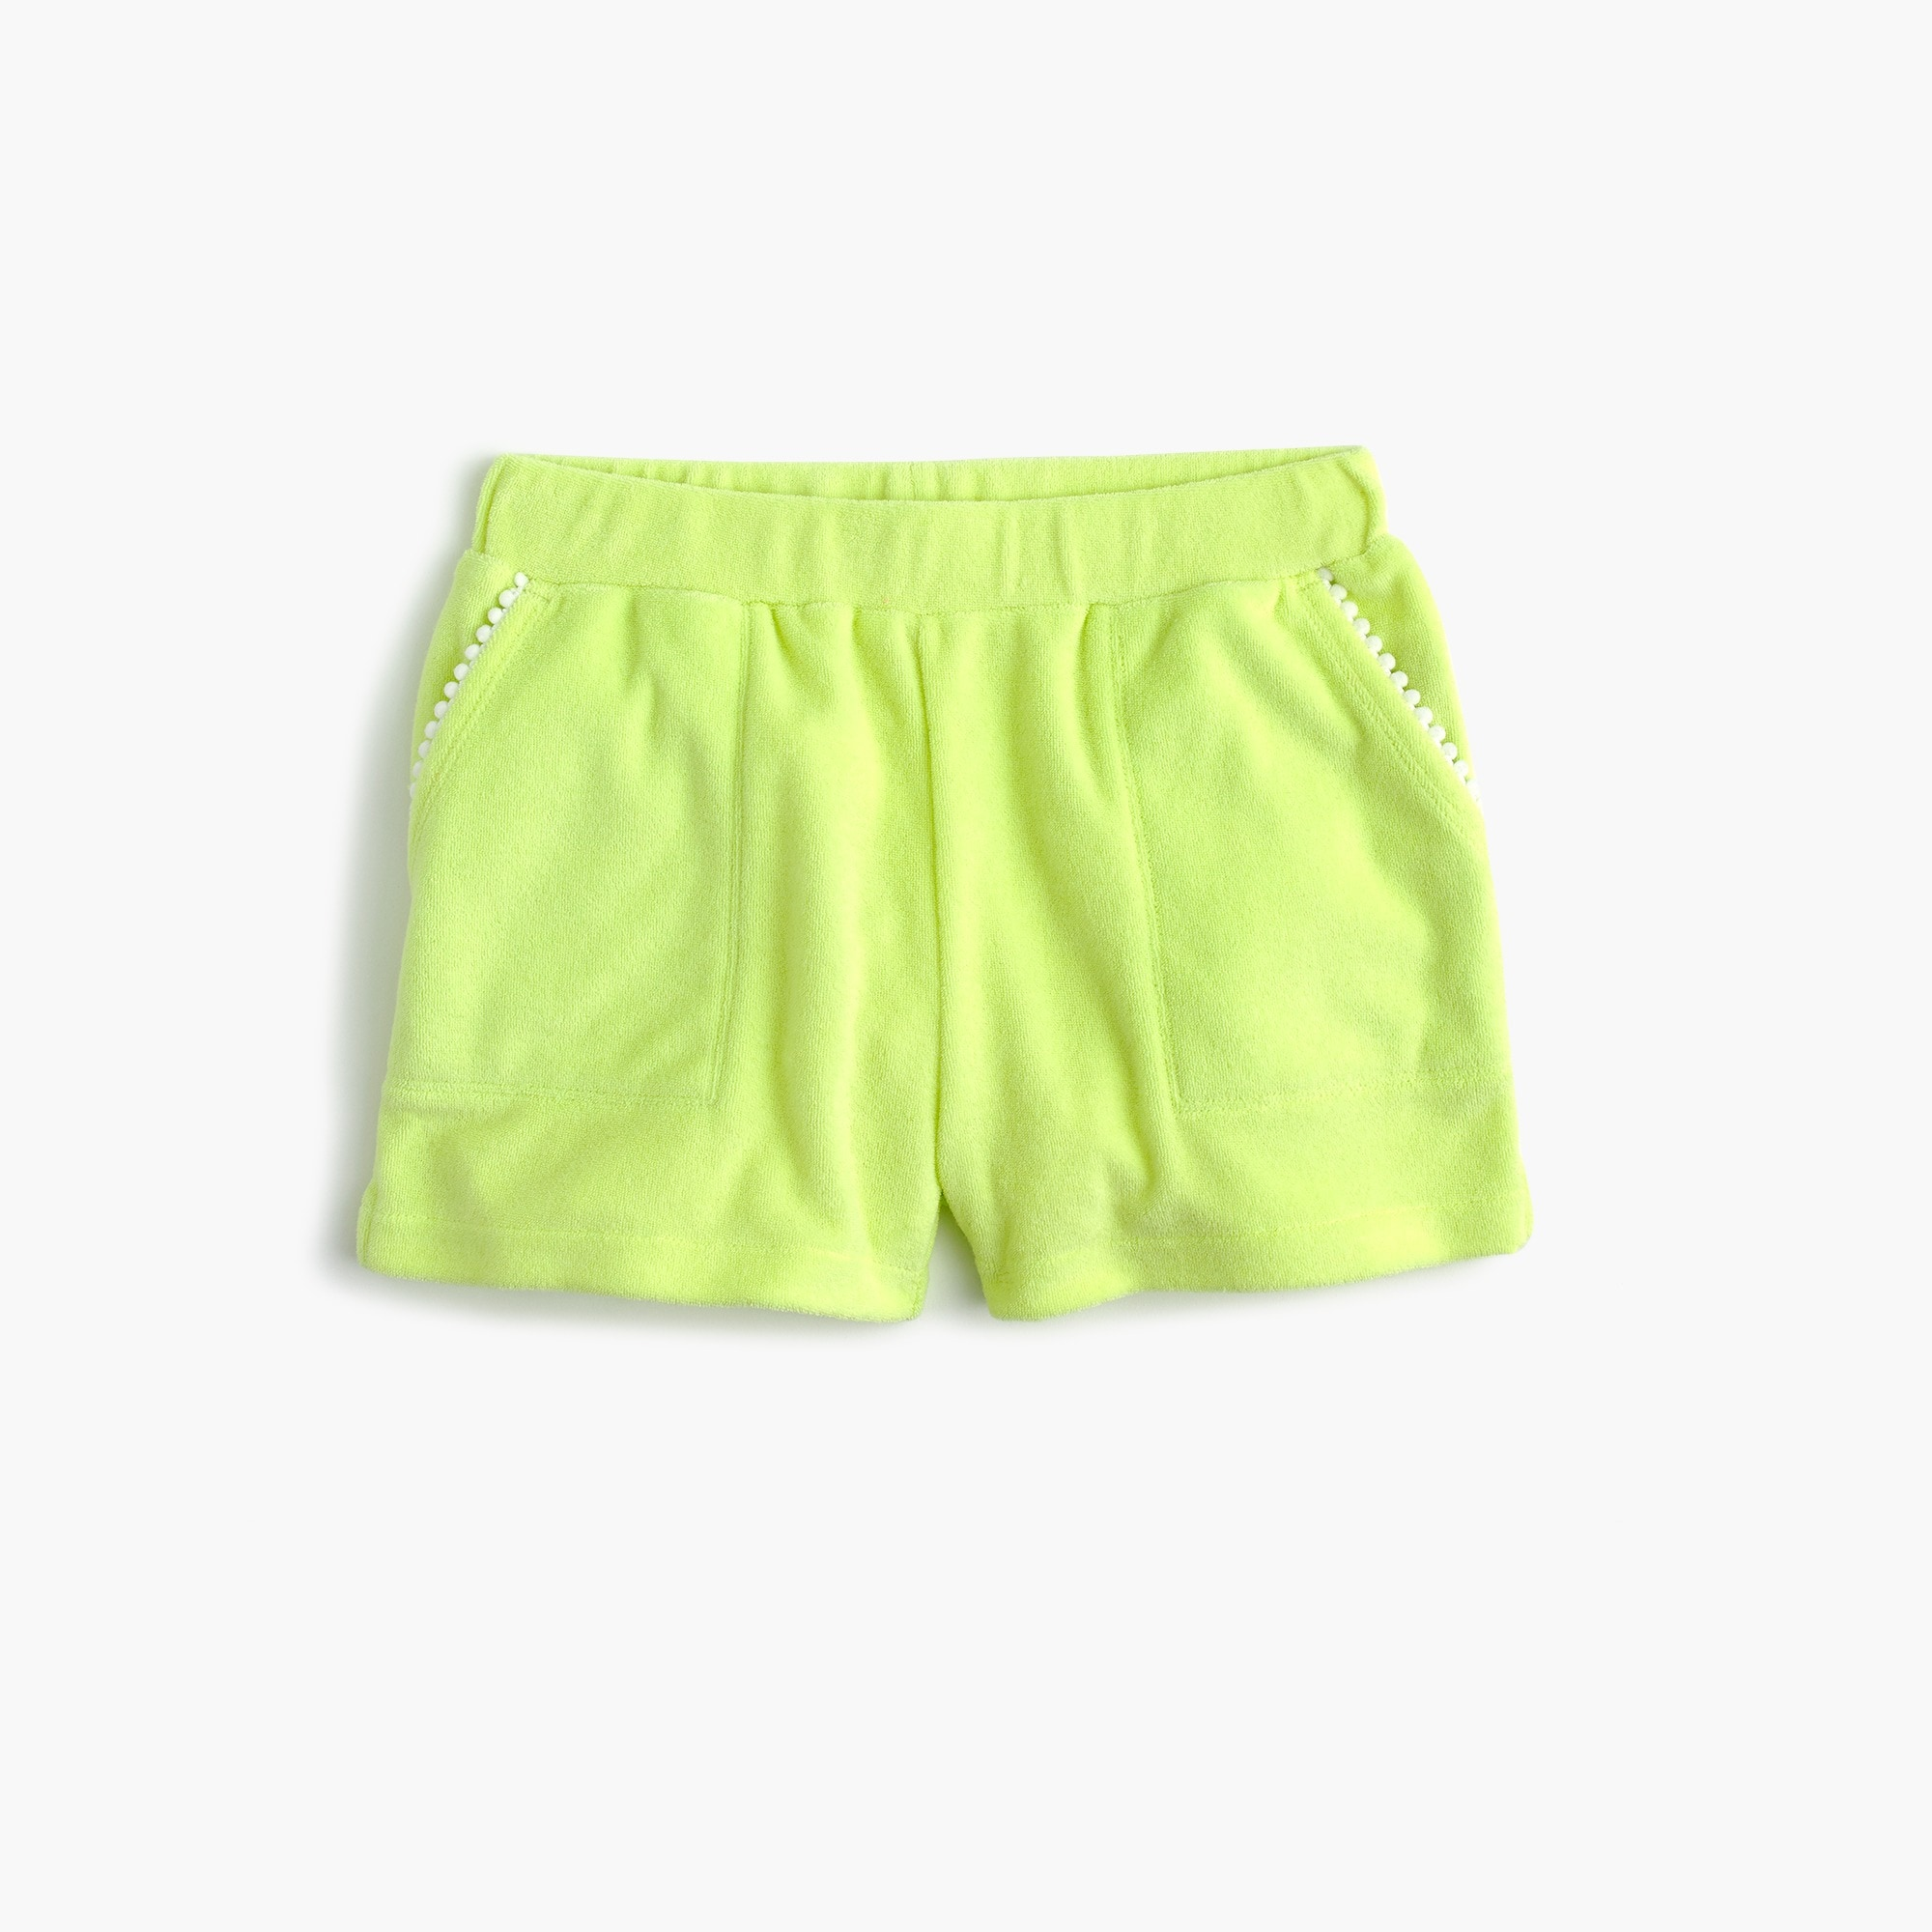 Girls' terry short girl new arrivals c